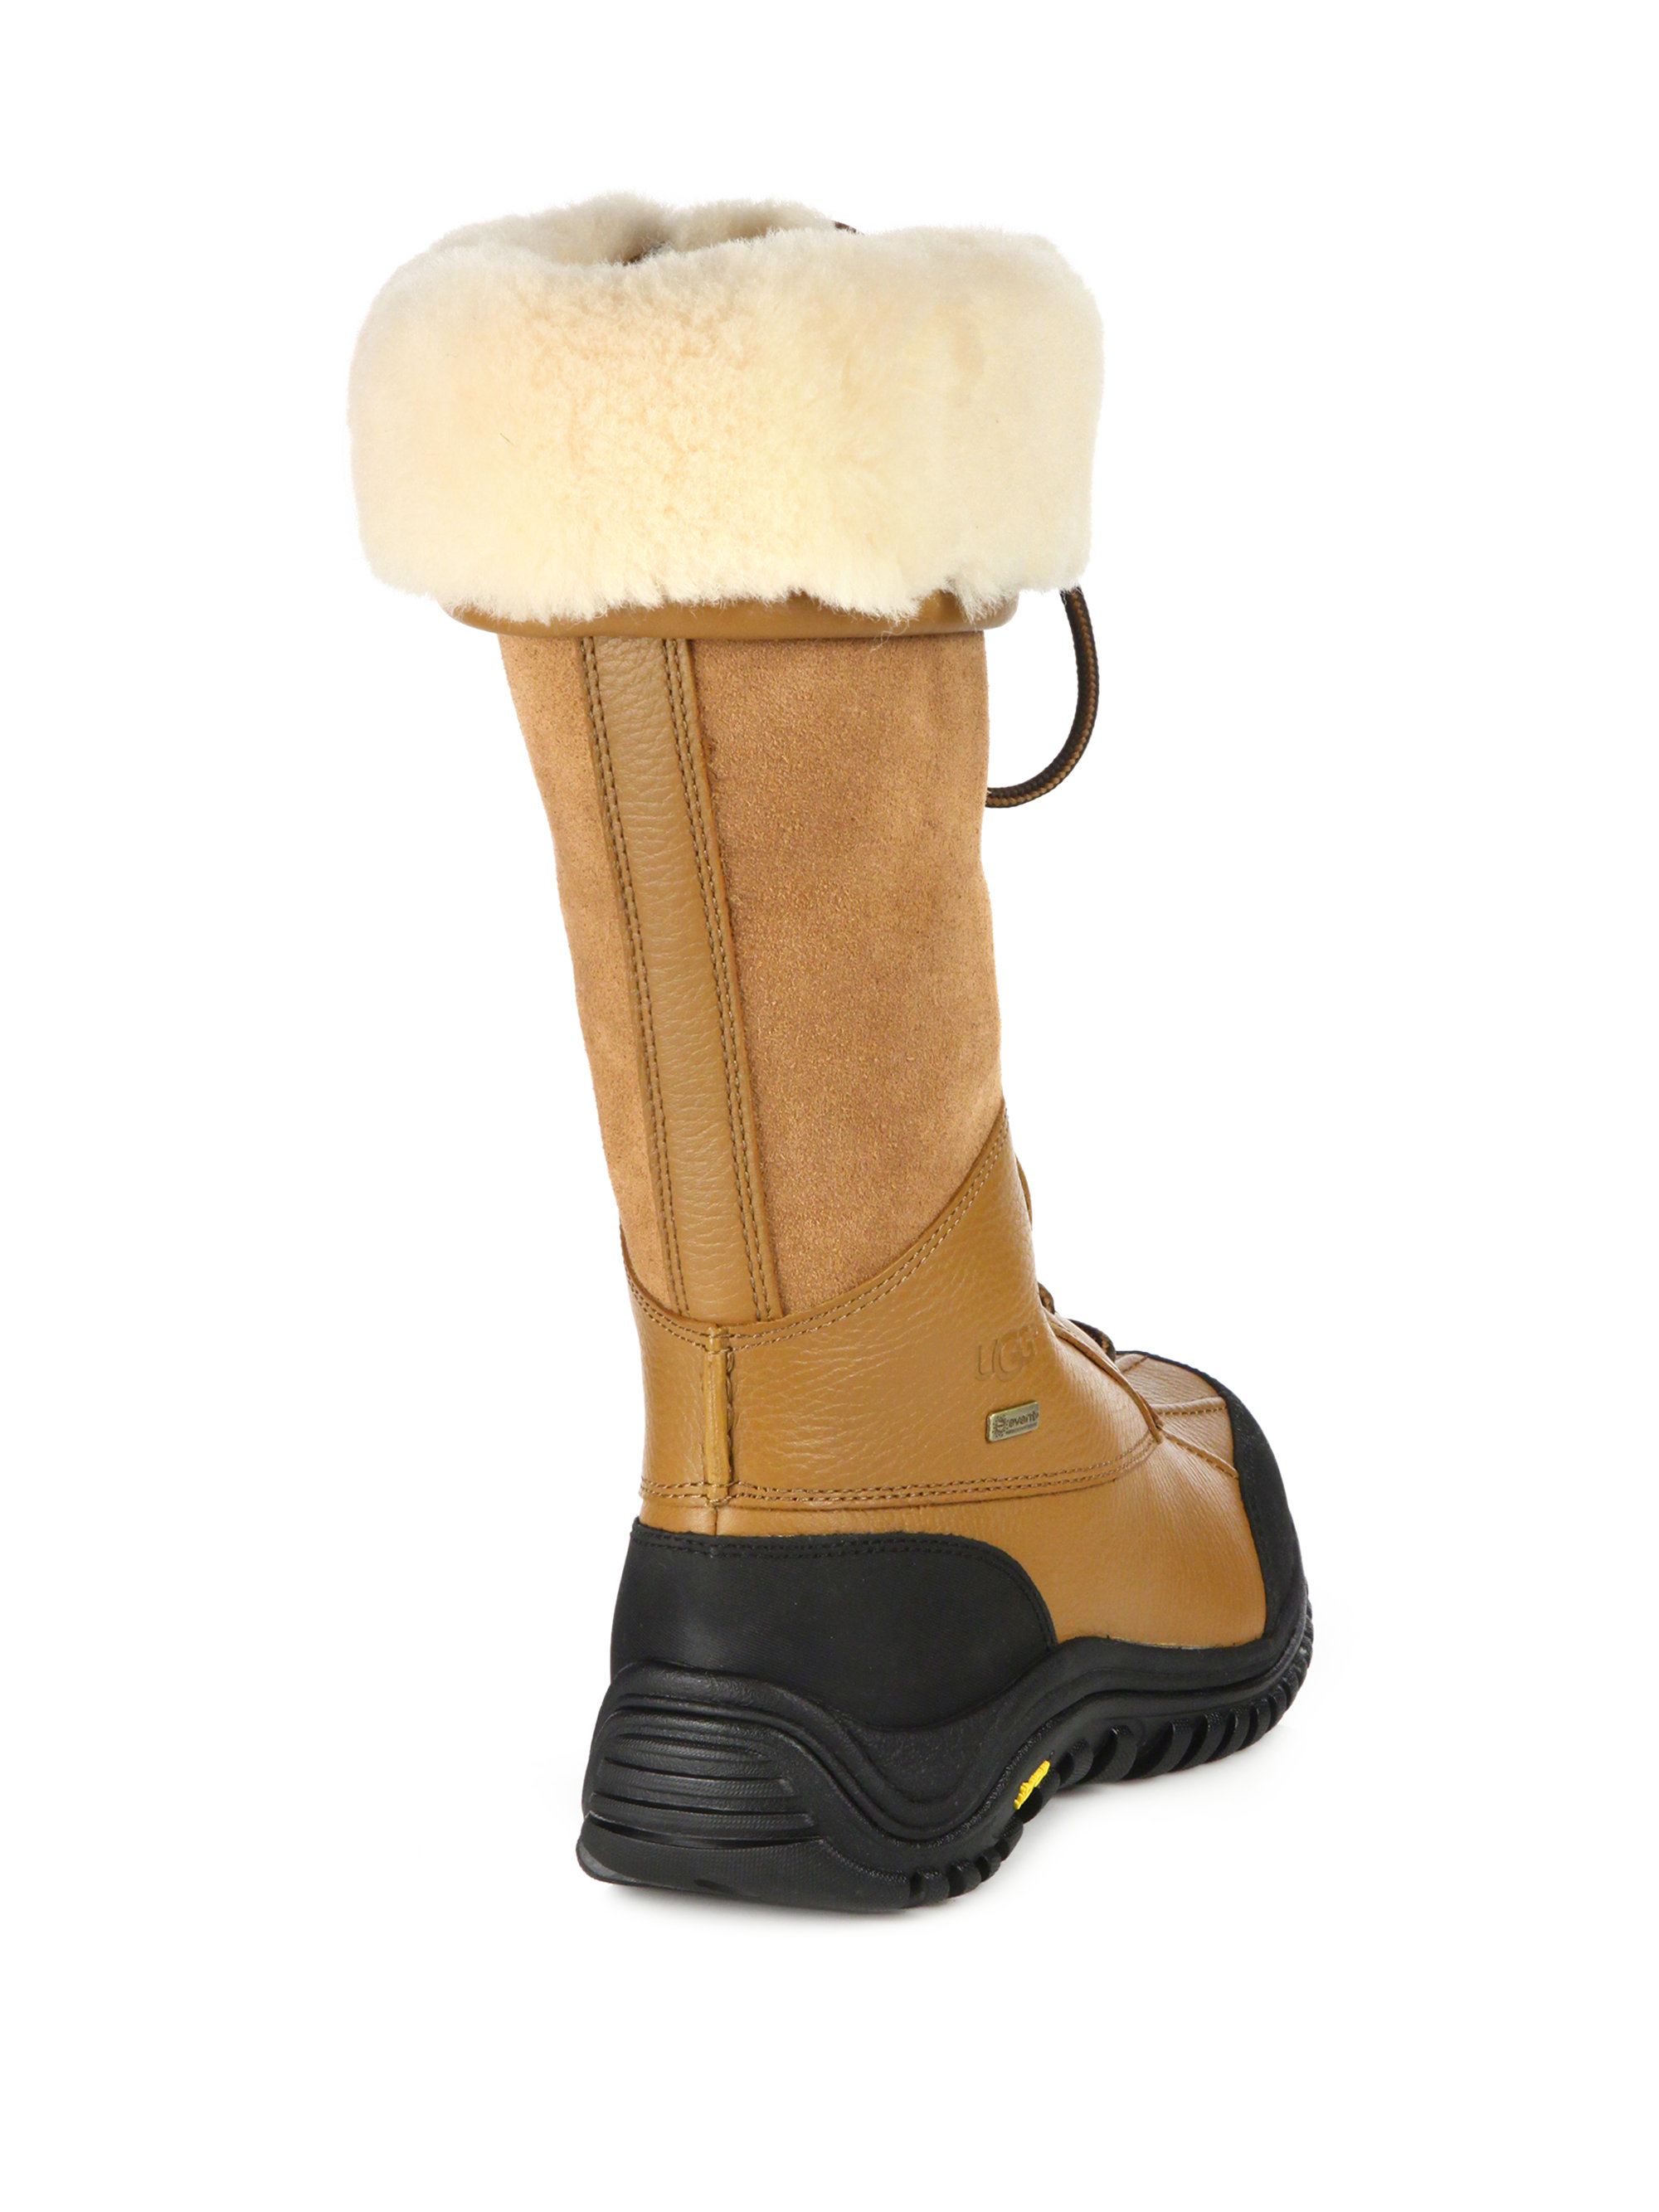 ugg boots made out of